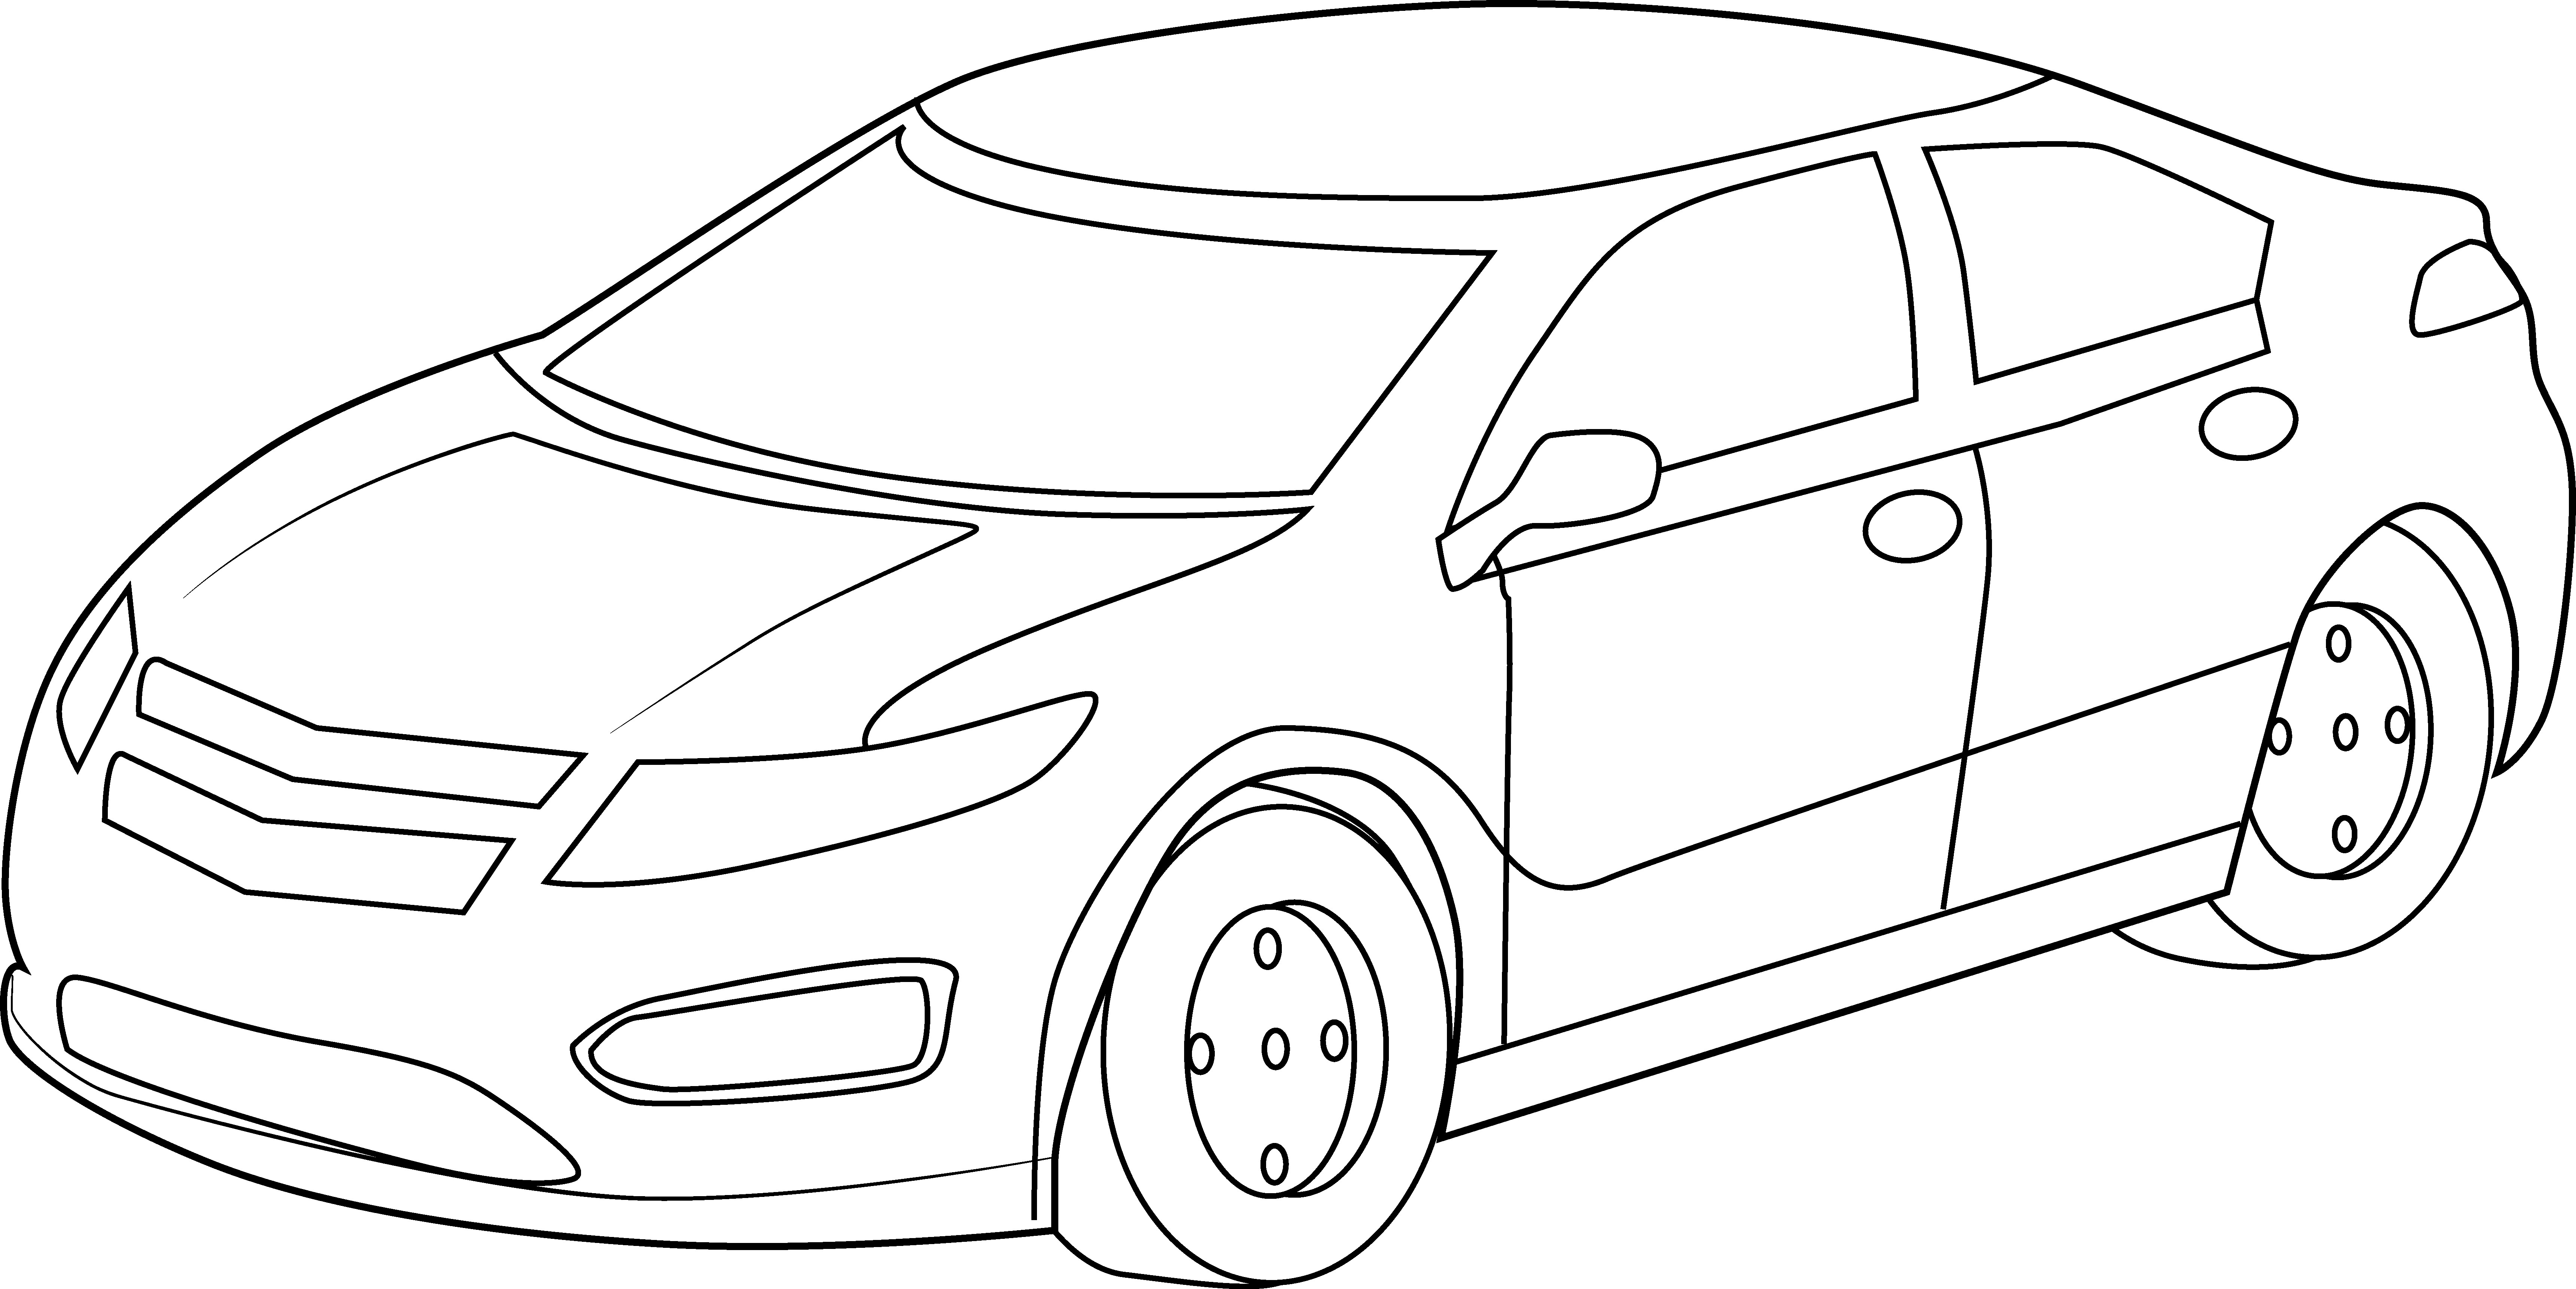 Cars Clipart Outline Cars Outline Transparent Free For